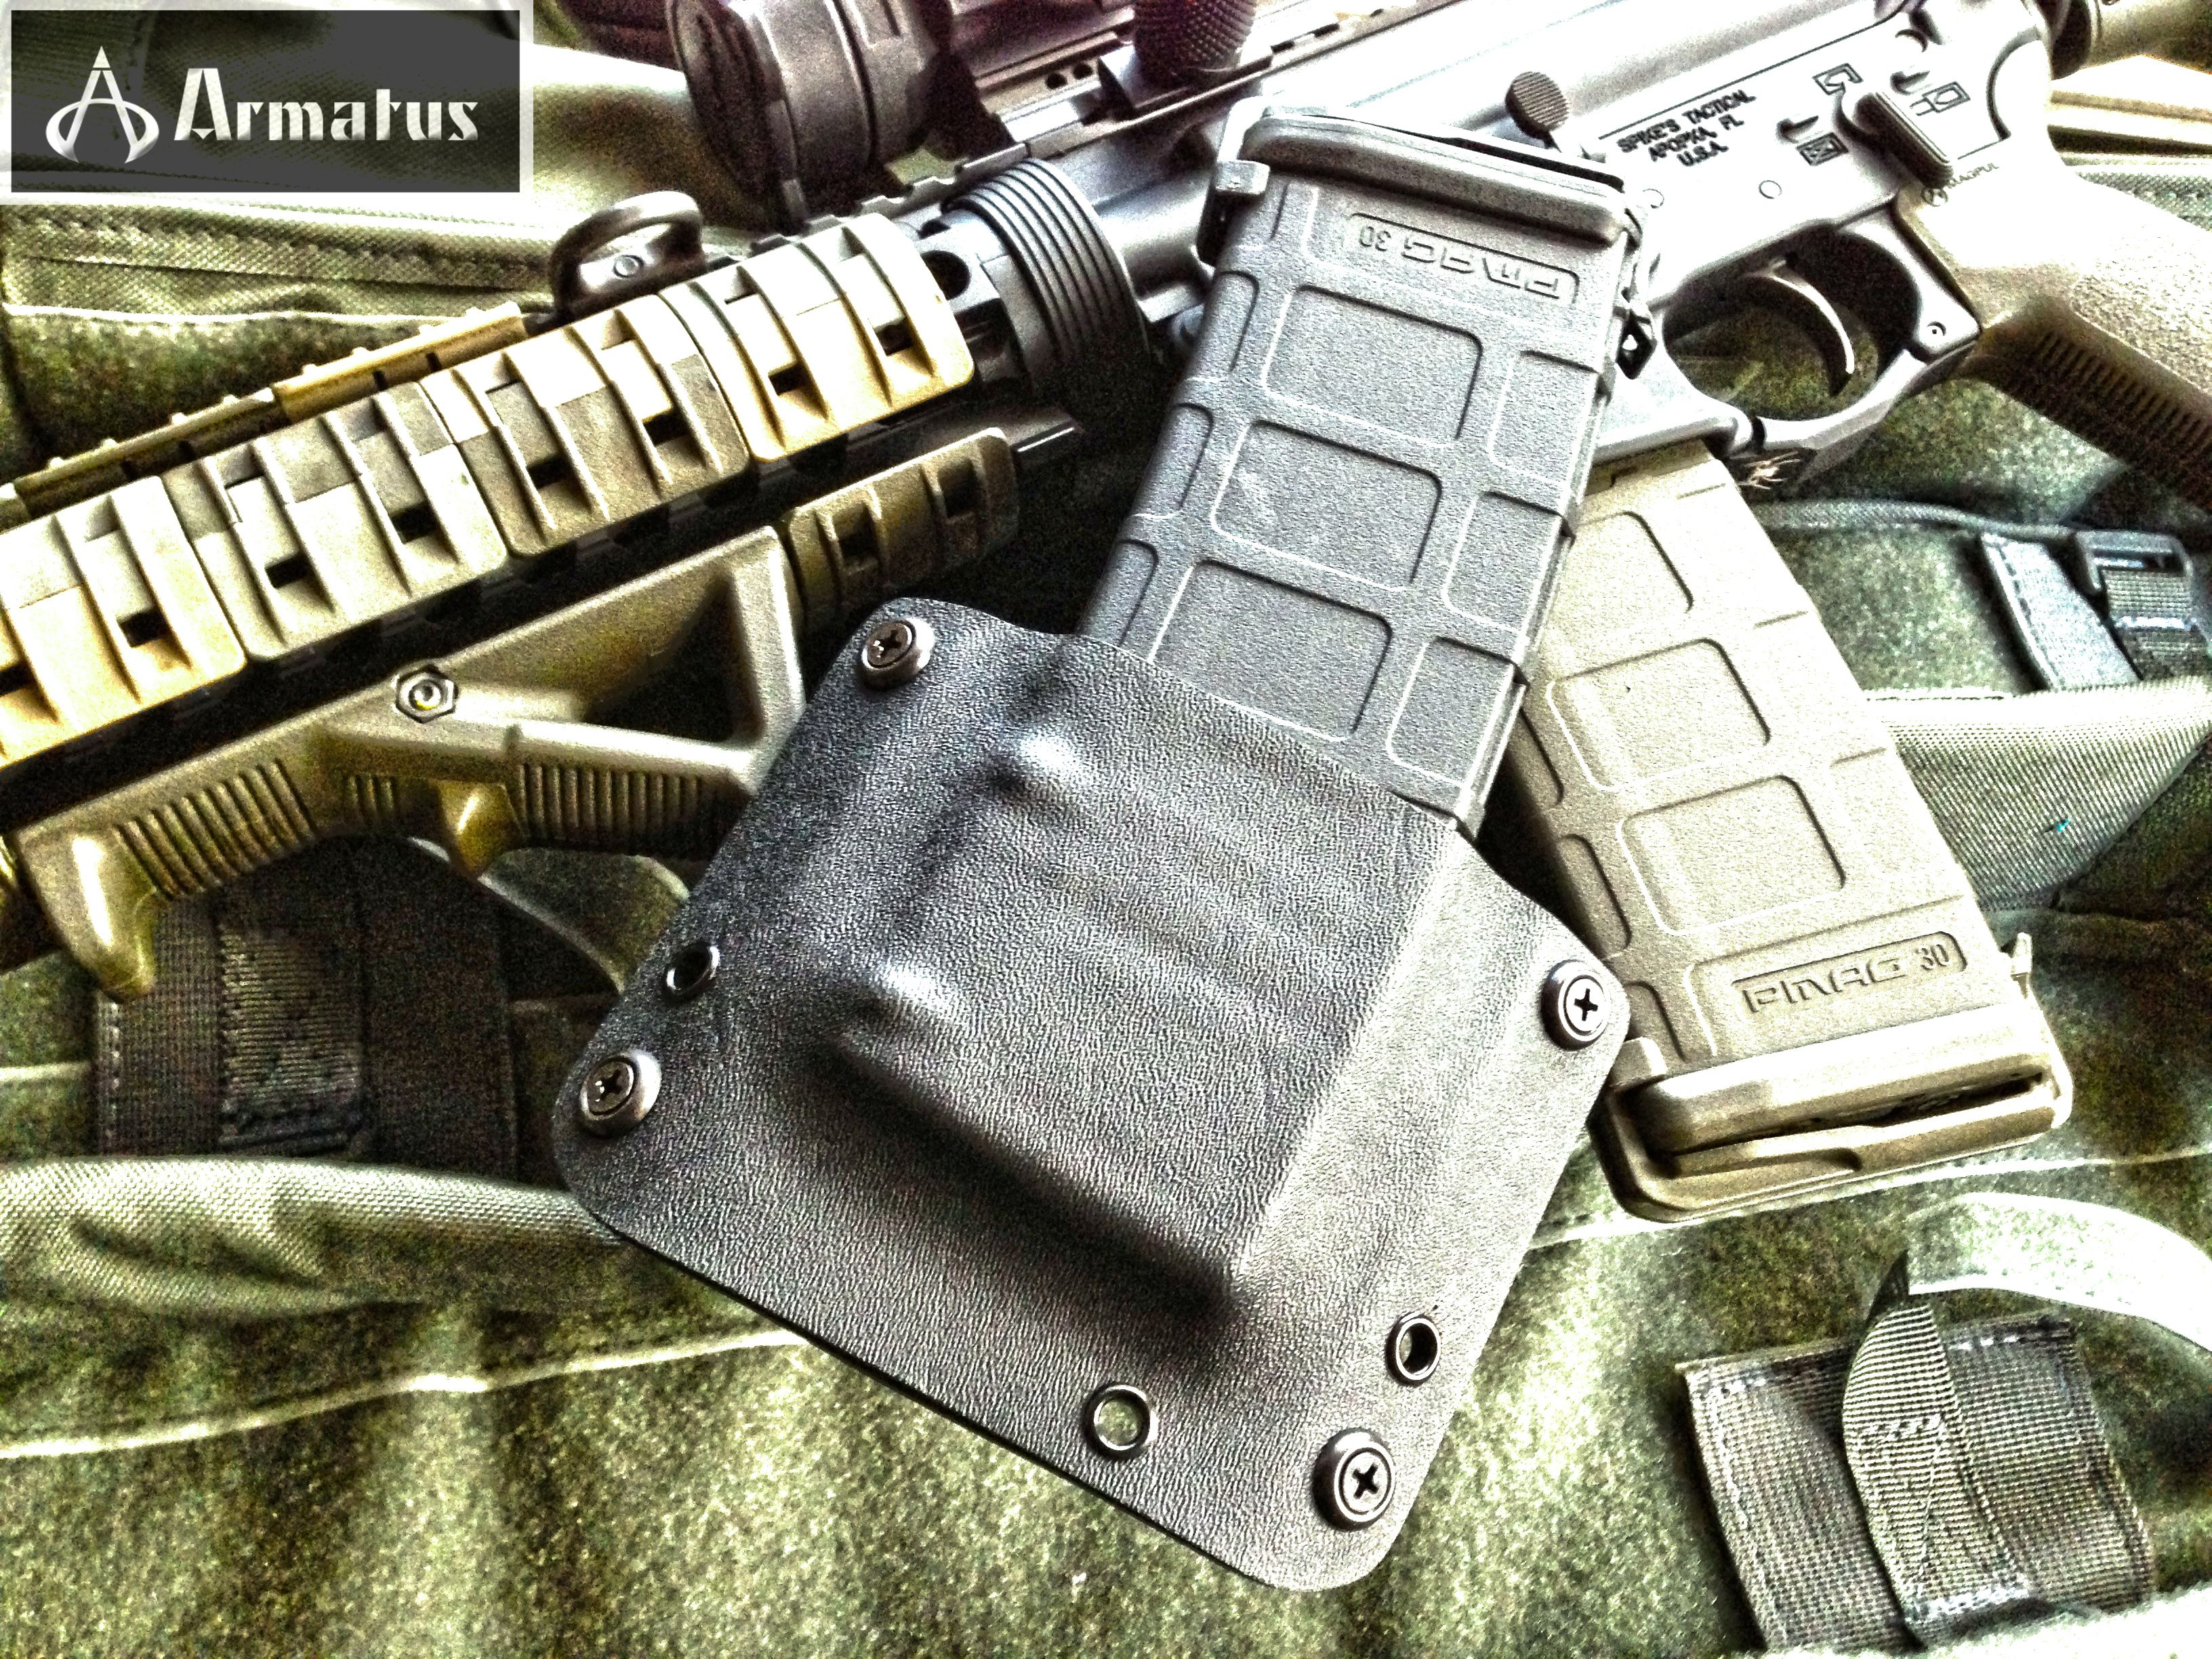 """P-Mag carriers are on sale this weekend for our Facebook fans.  They normally sell for $30, but this weekend we are selling them to our FB fans for $20.  If you want to place an order, email us through our website and let us know you saw this post.  We will send you a PayPal invoice for the discounted price (you do not need an account to checkout through PayPal).  As with all of our gear, the P-Mag carrier is covered by our """"Gear for Life"""" unconditional lifetime warranty."""